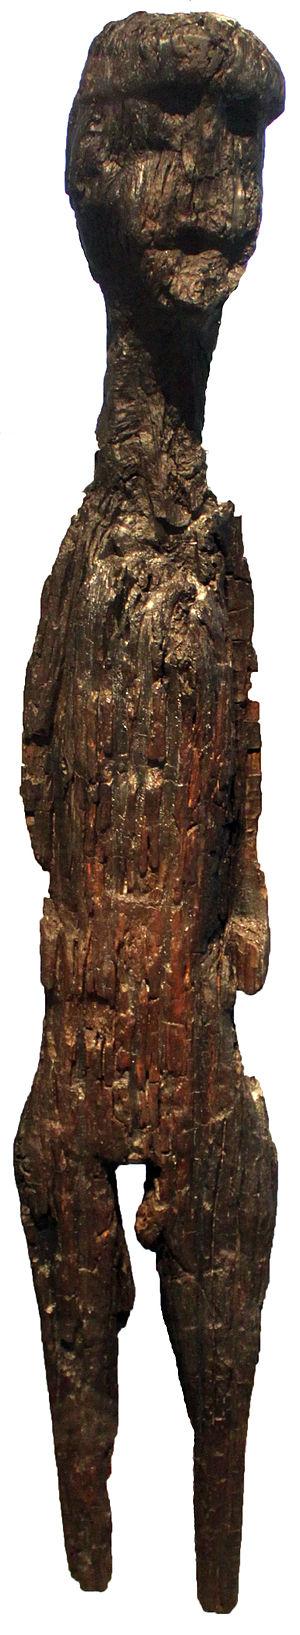 Anthropomorphic wooden cult figurines of Central and Northern Europe - Slavic figure of a god, c. 5th century CE, from Altfriesack, Fehrbellin, Brandenburg, Germany